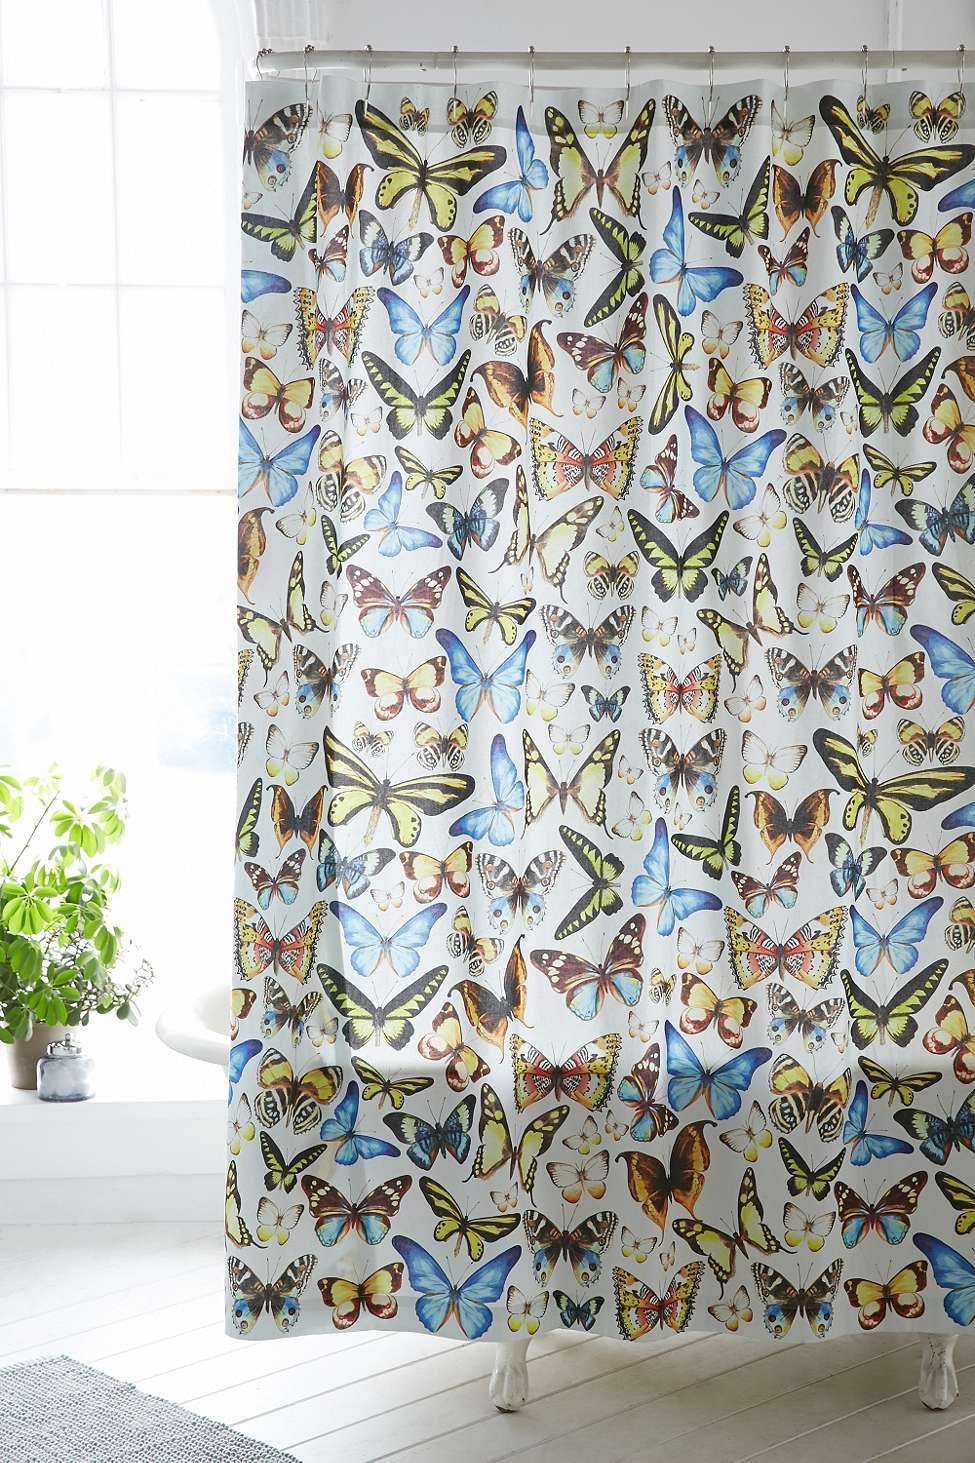 Entomology Butterfly Shower Curtain Butterfly Shower Curtain Urban Outfitters Curtains Diy Shower Curtain